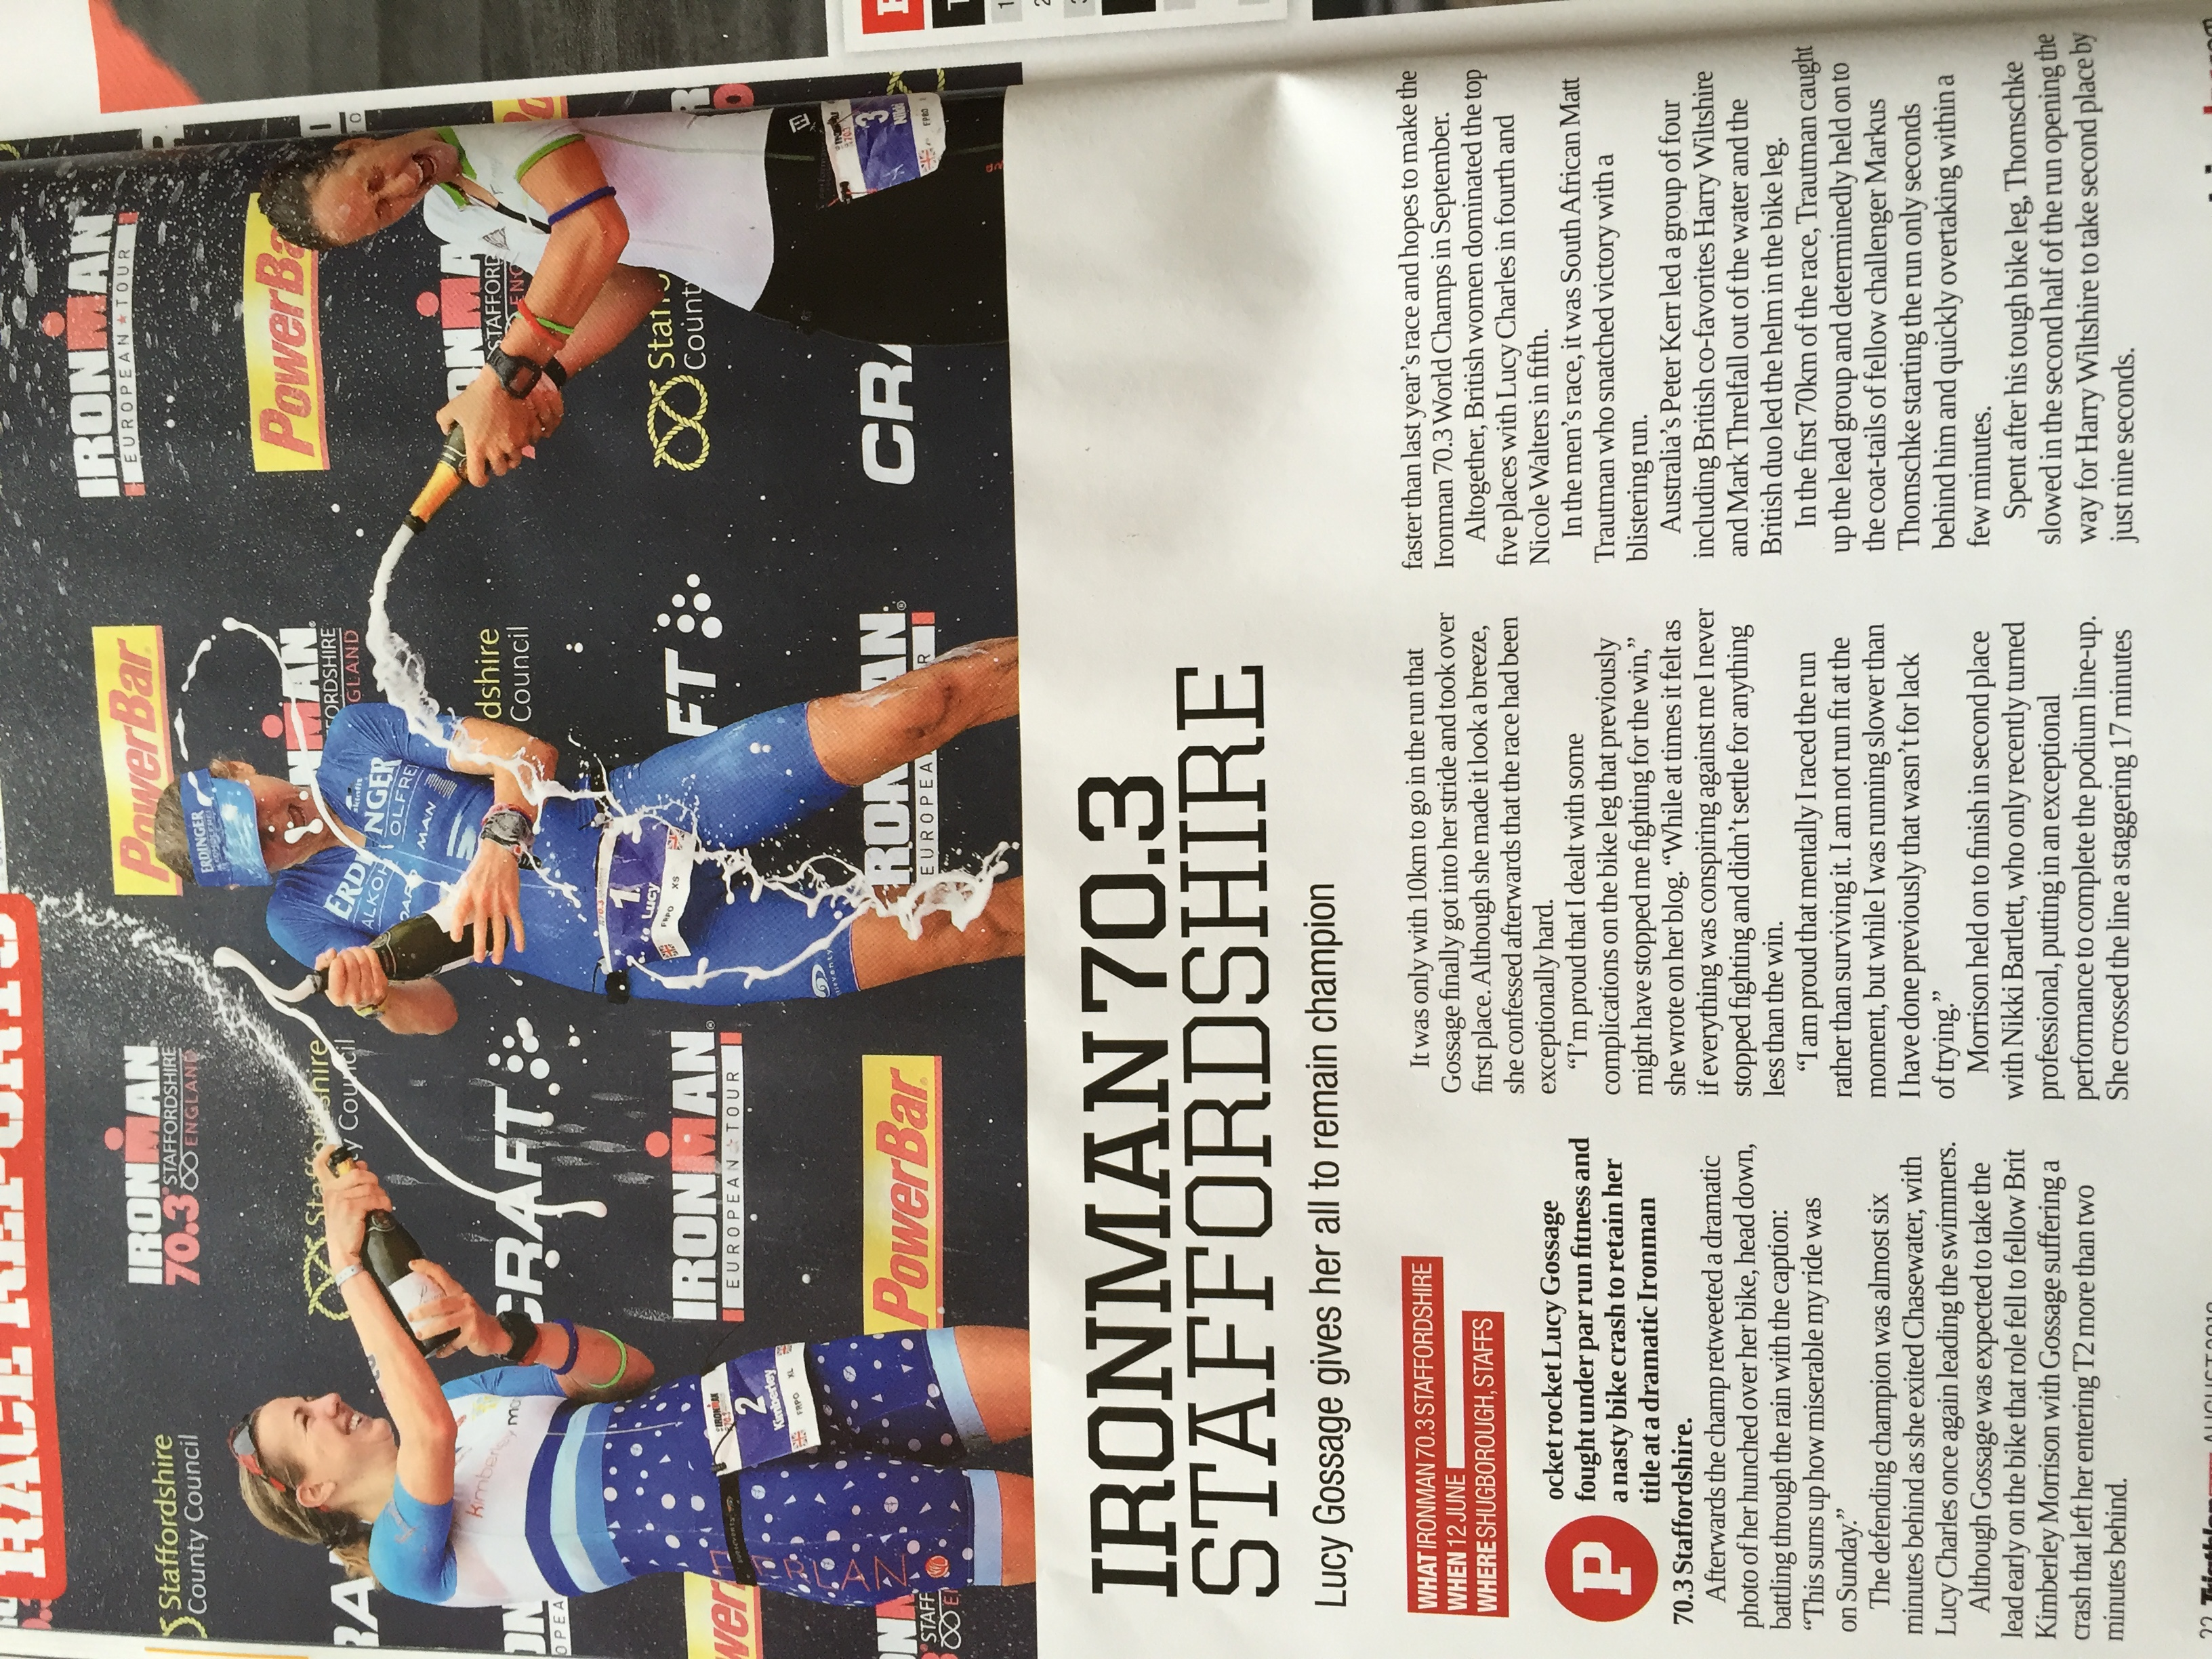 220 Triathlon Mag; IM Staffs 70.3